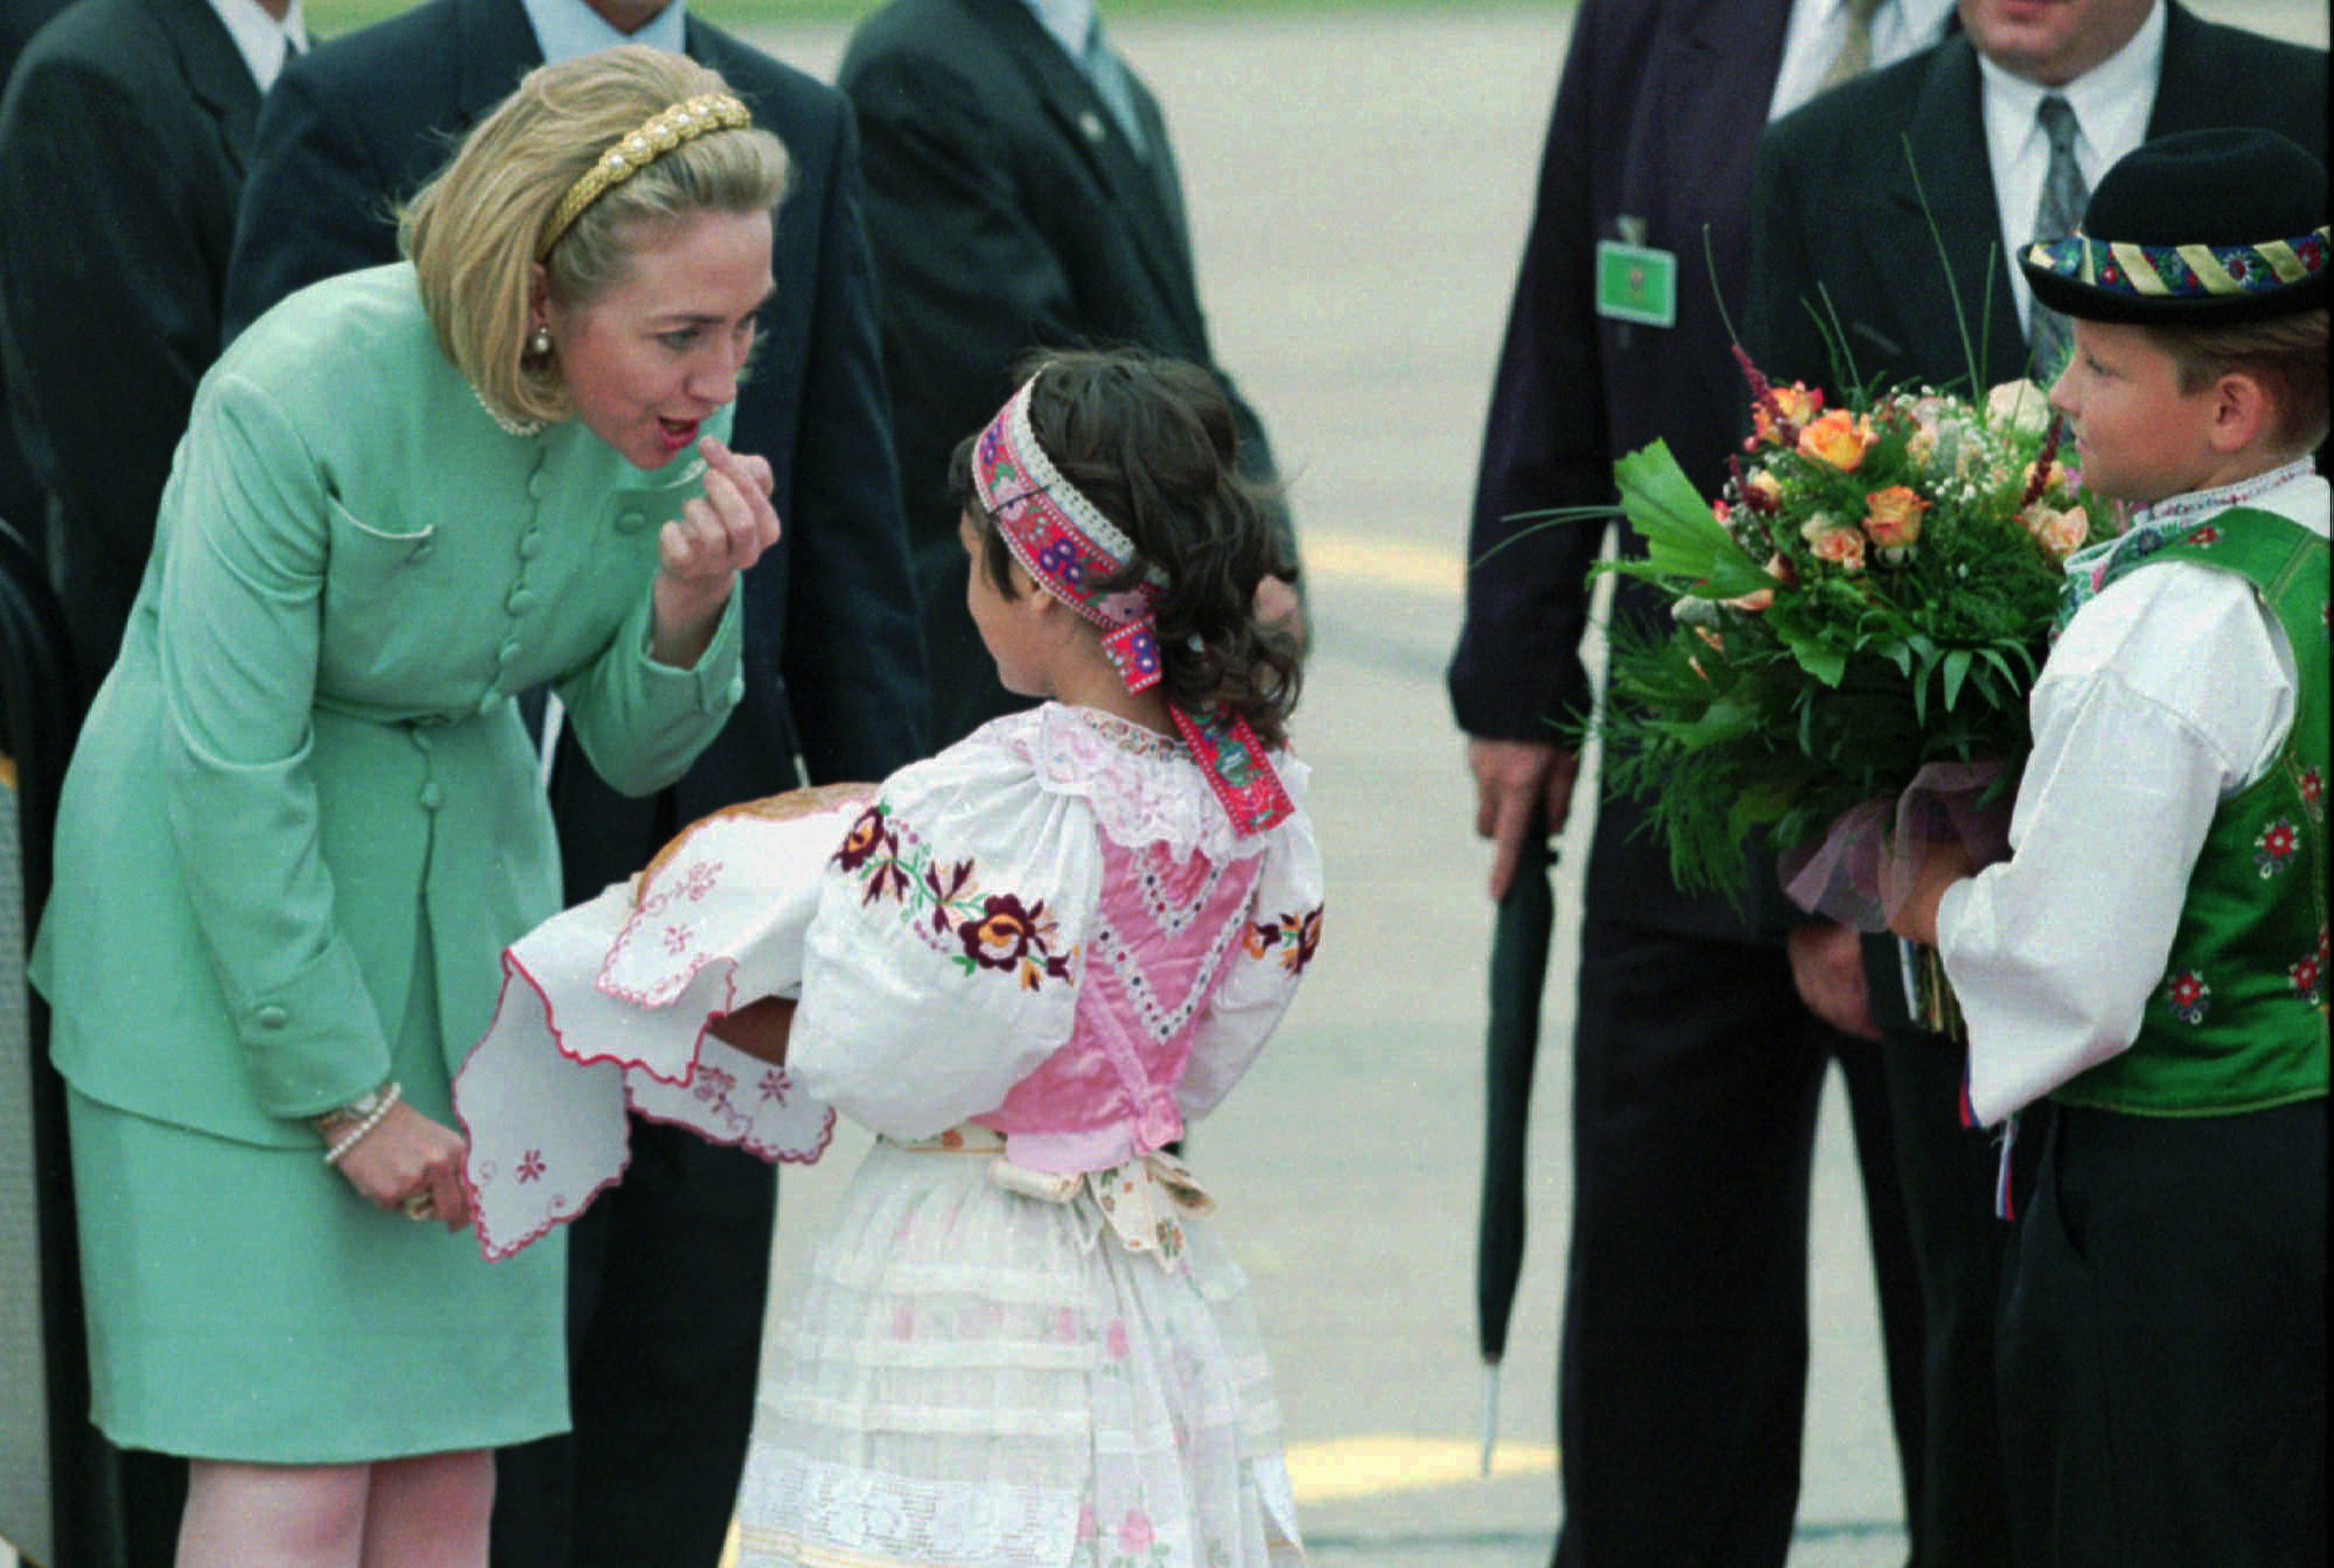 A young Slovakian girl welcomes Hillary Clinton in a traditional manner with bread and salt as she arrives at Bratislava's airport on July 6, 1996.